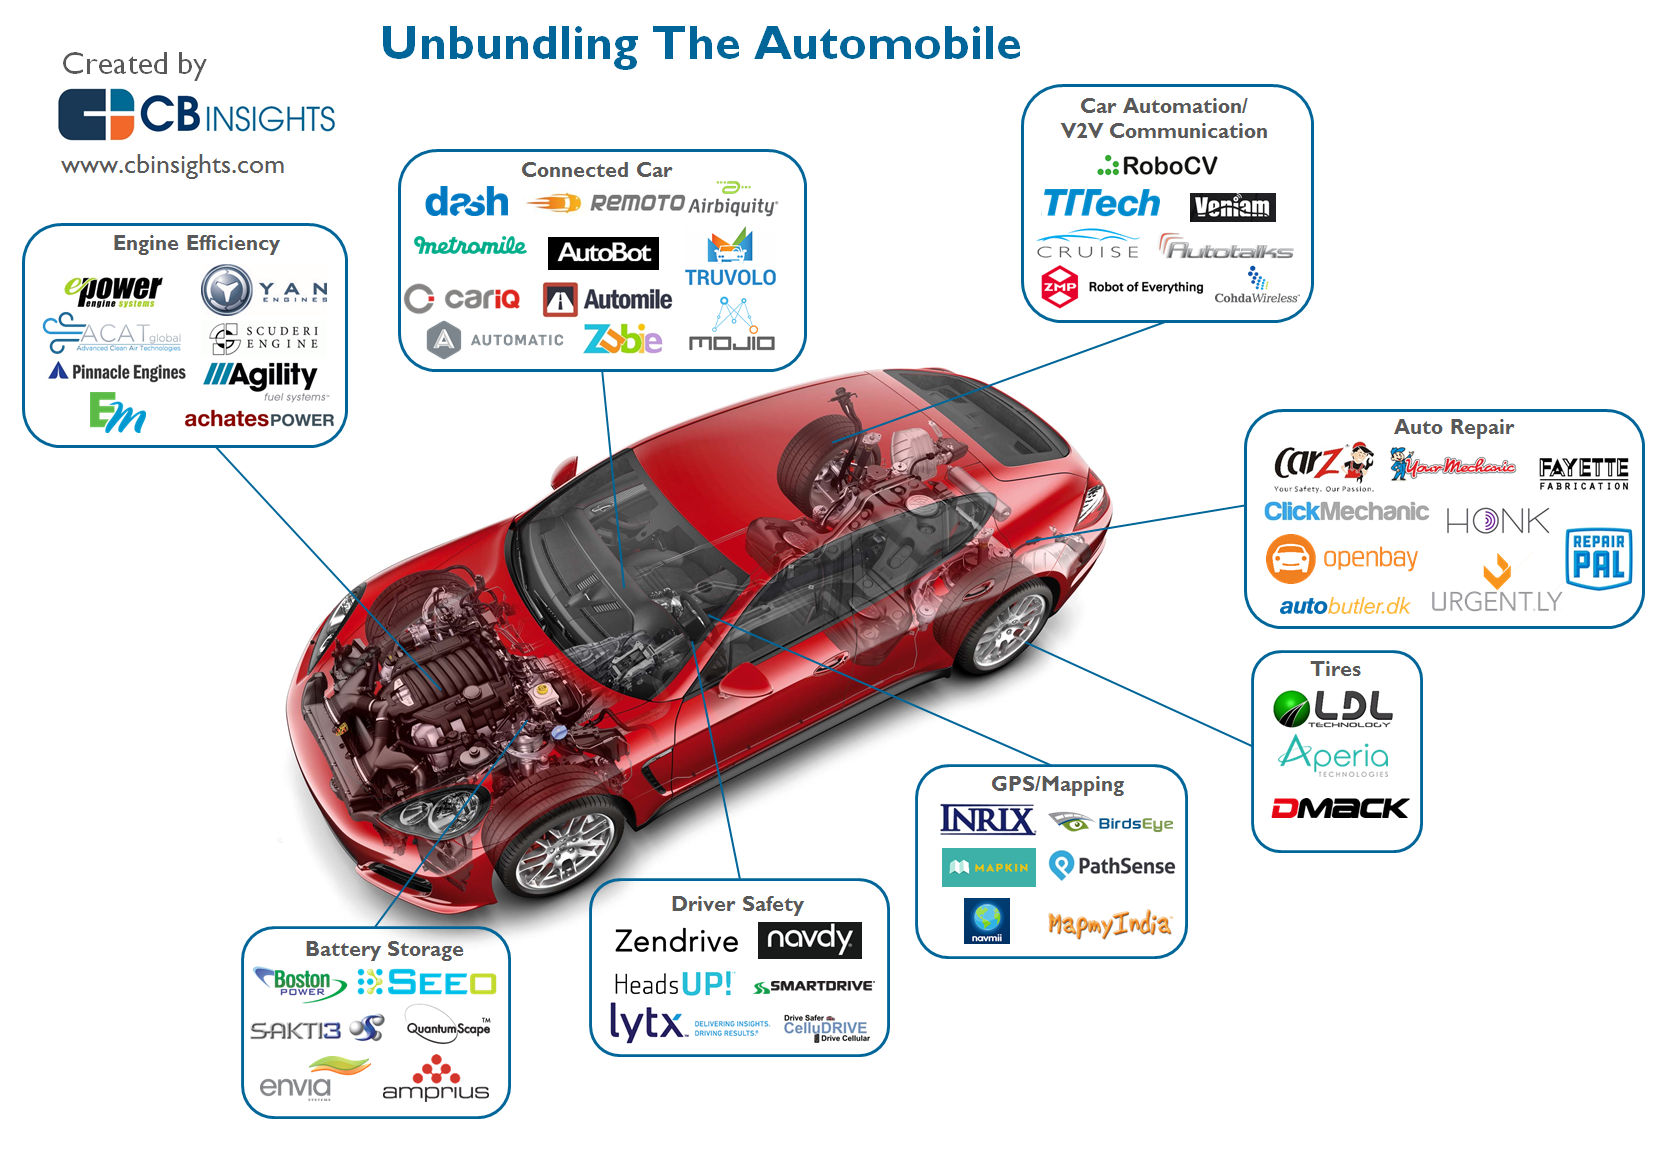 Startups Unbundling The Car And Disrupting Automobile